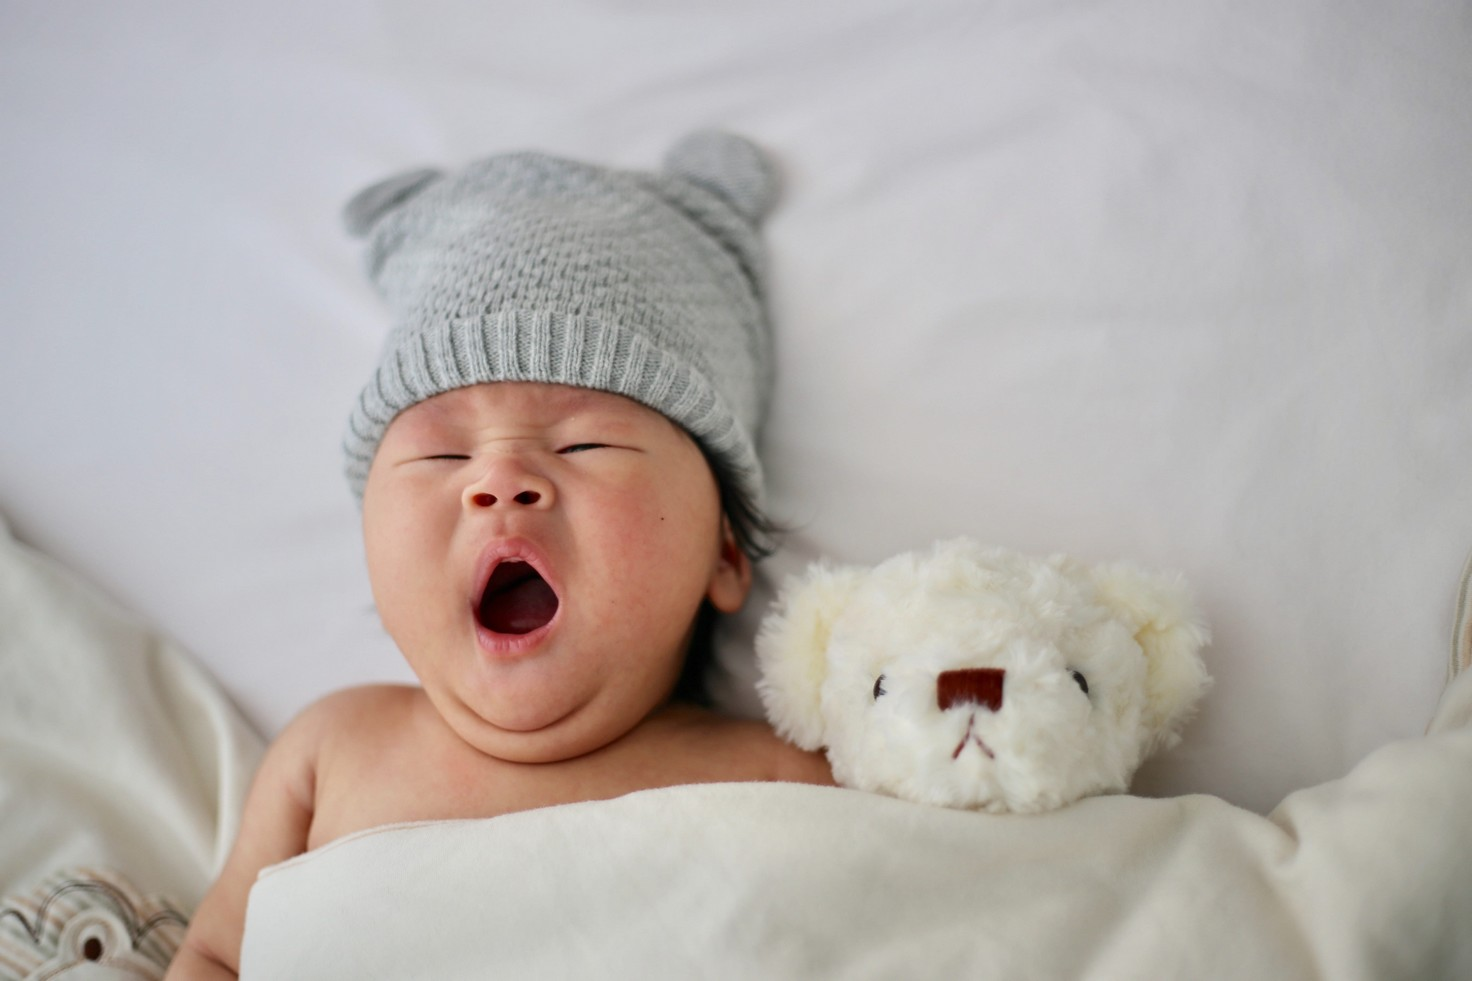 baby lying, yawning, next to a teddy bear whilst under a blanket and wearing a grey hat.